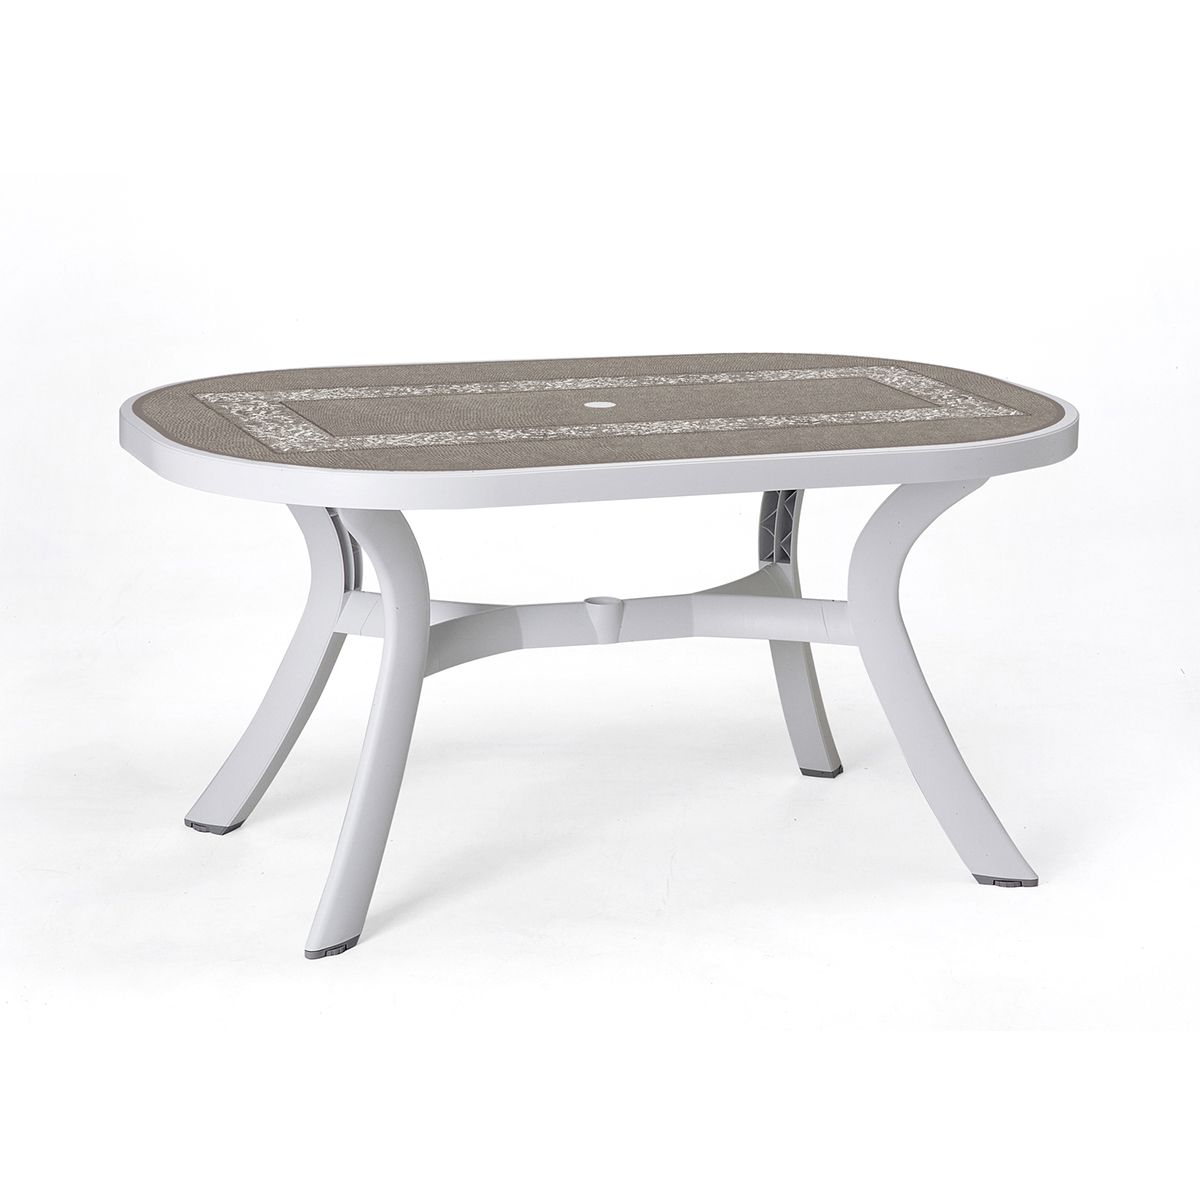 Table de jardin plastique toscana ovale zendart design for Table de jardin plastique